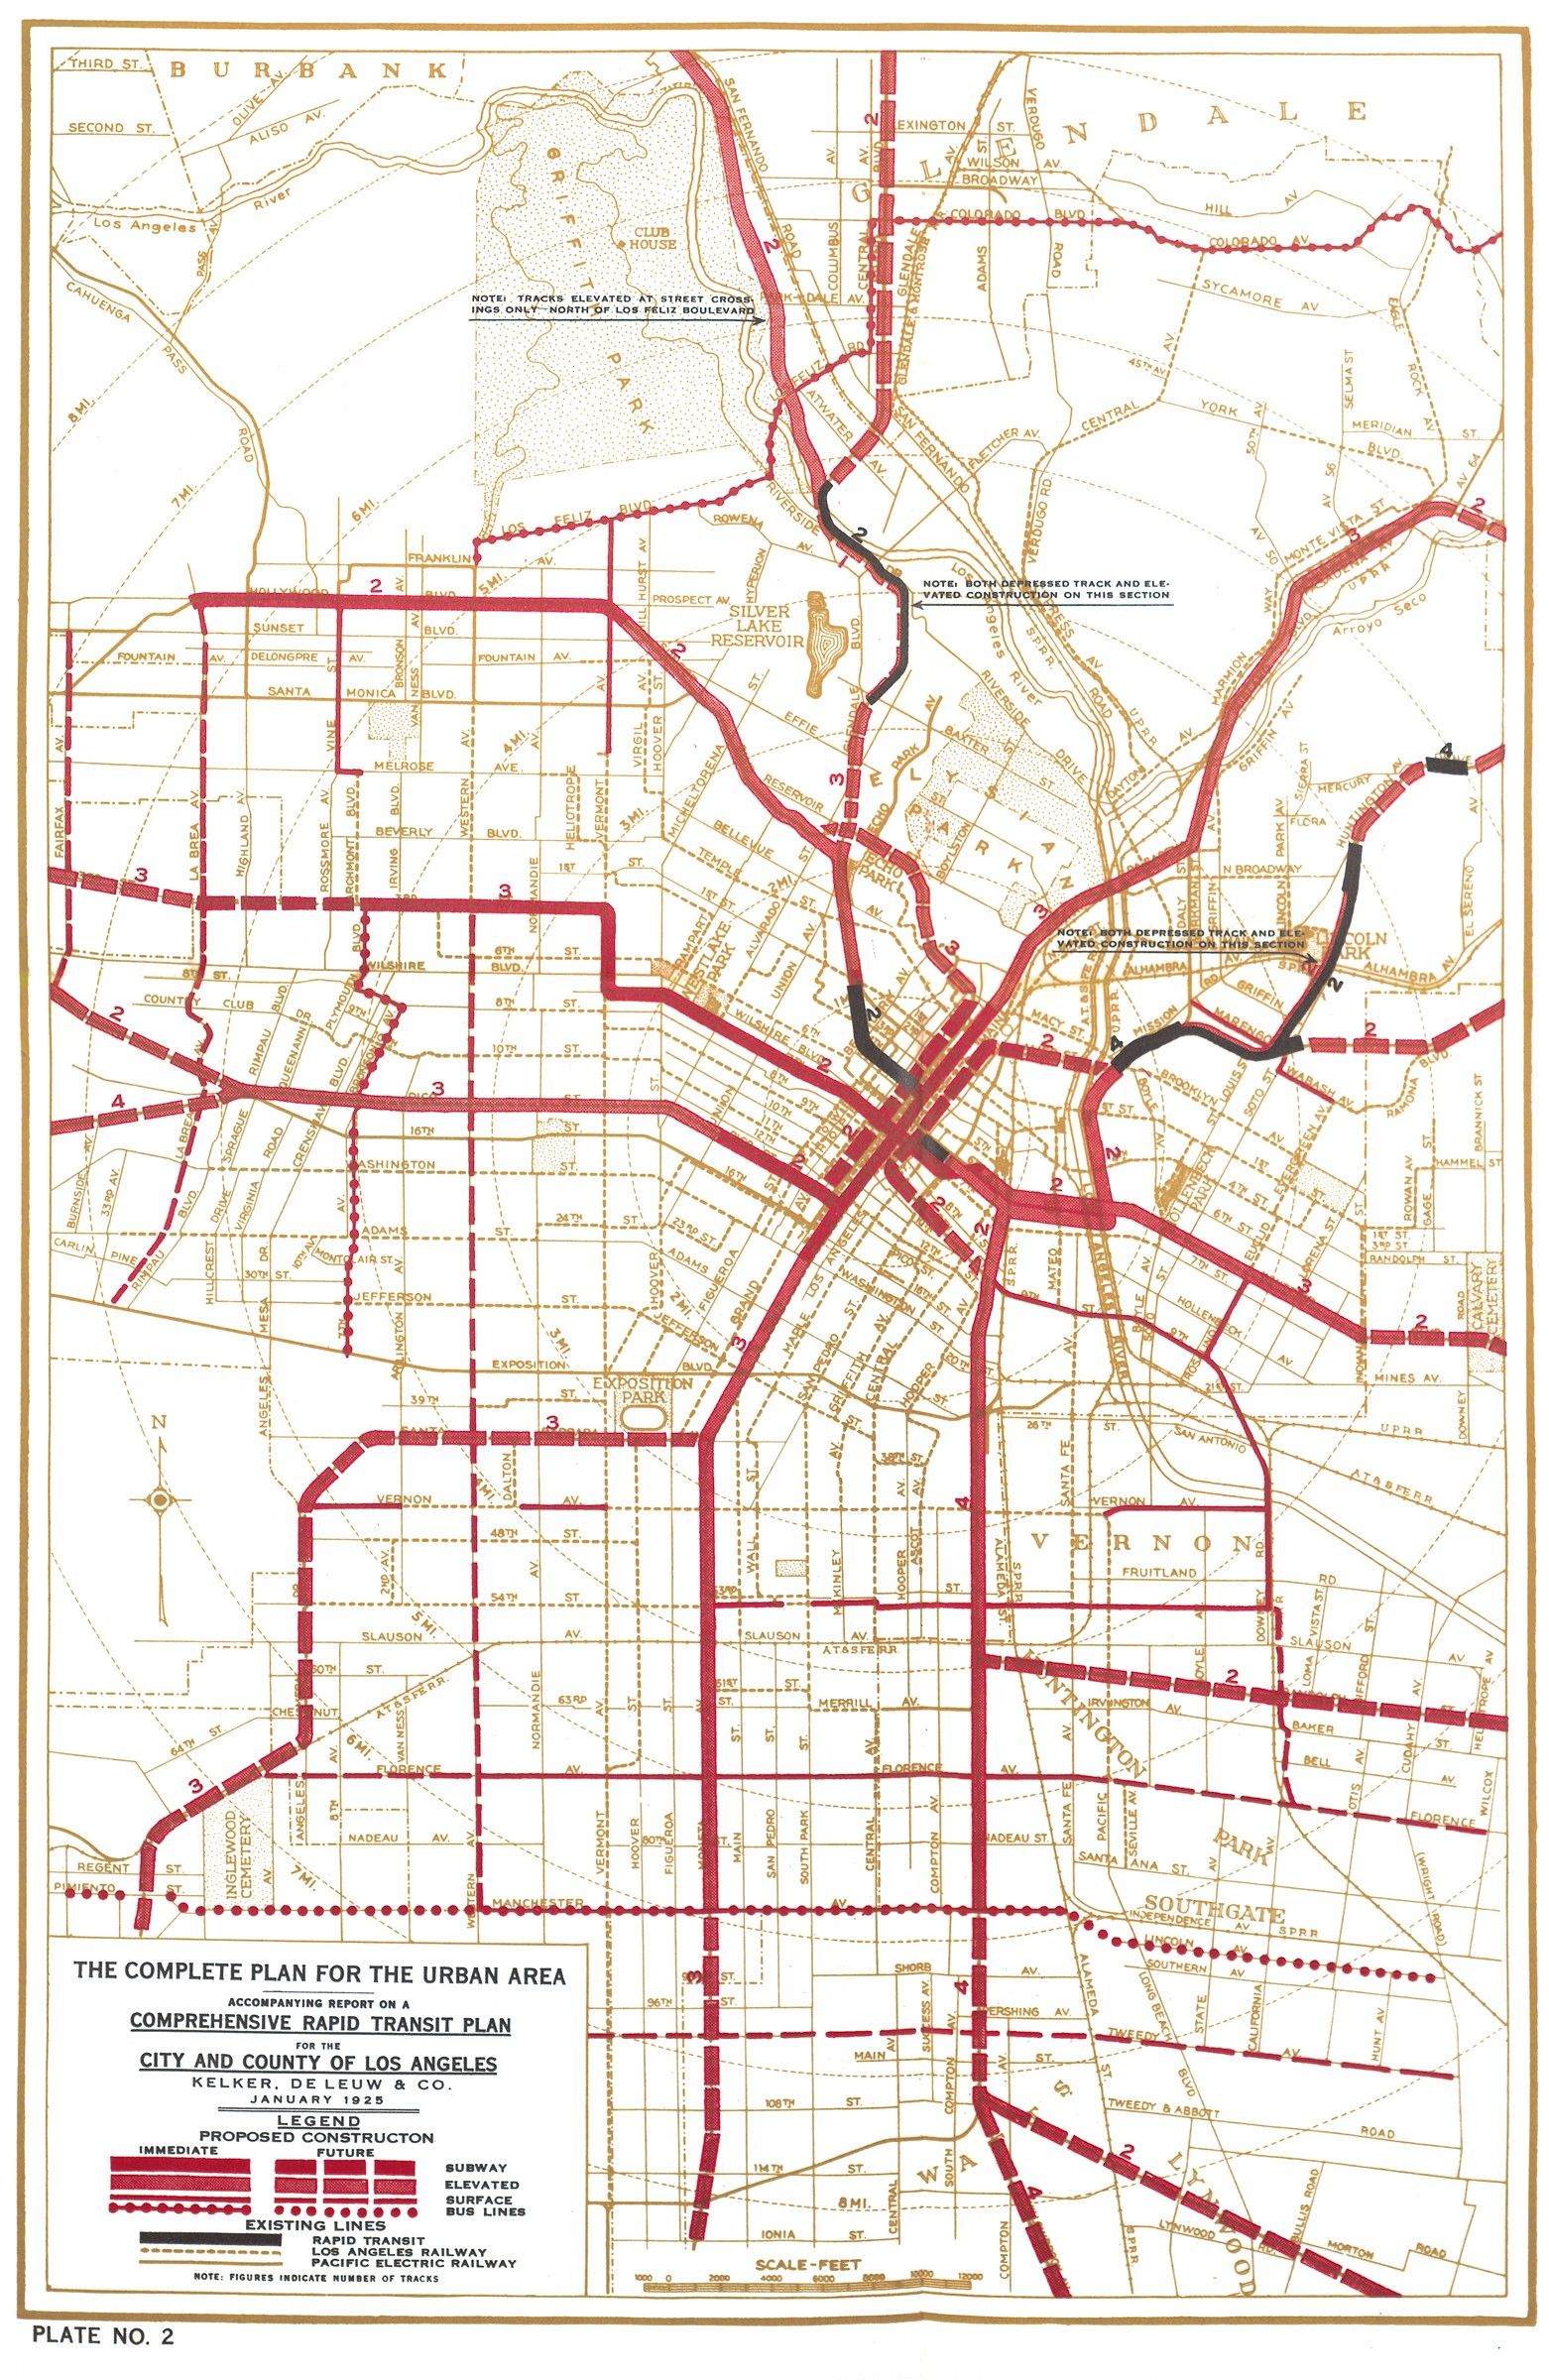 La Subway Map With City Map.Pin By Ricky Porter On Greater Los Angeles In 2019 Map City Maps